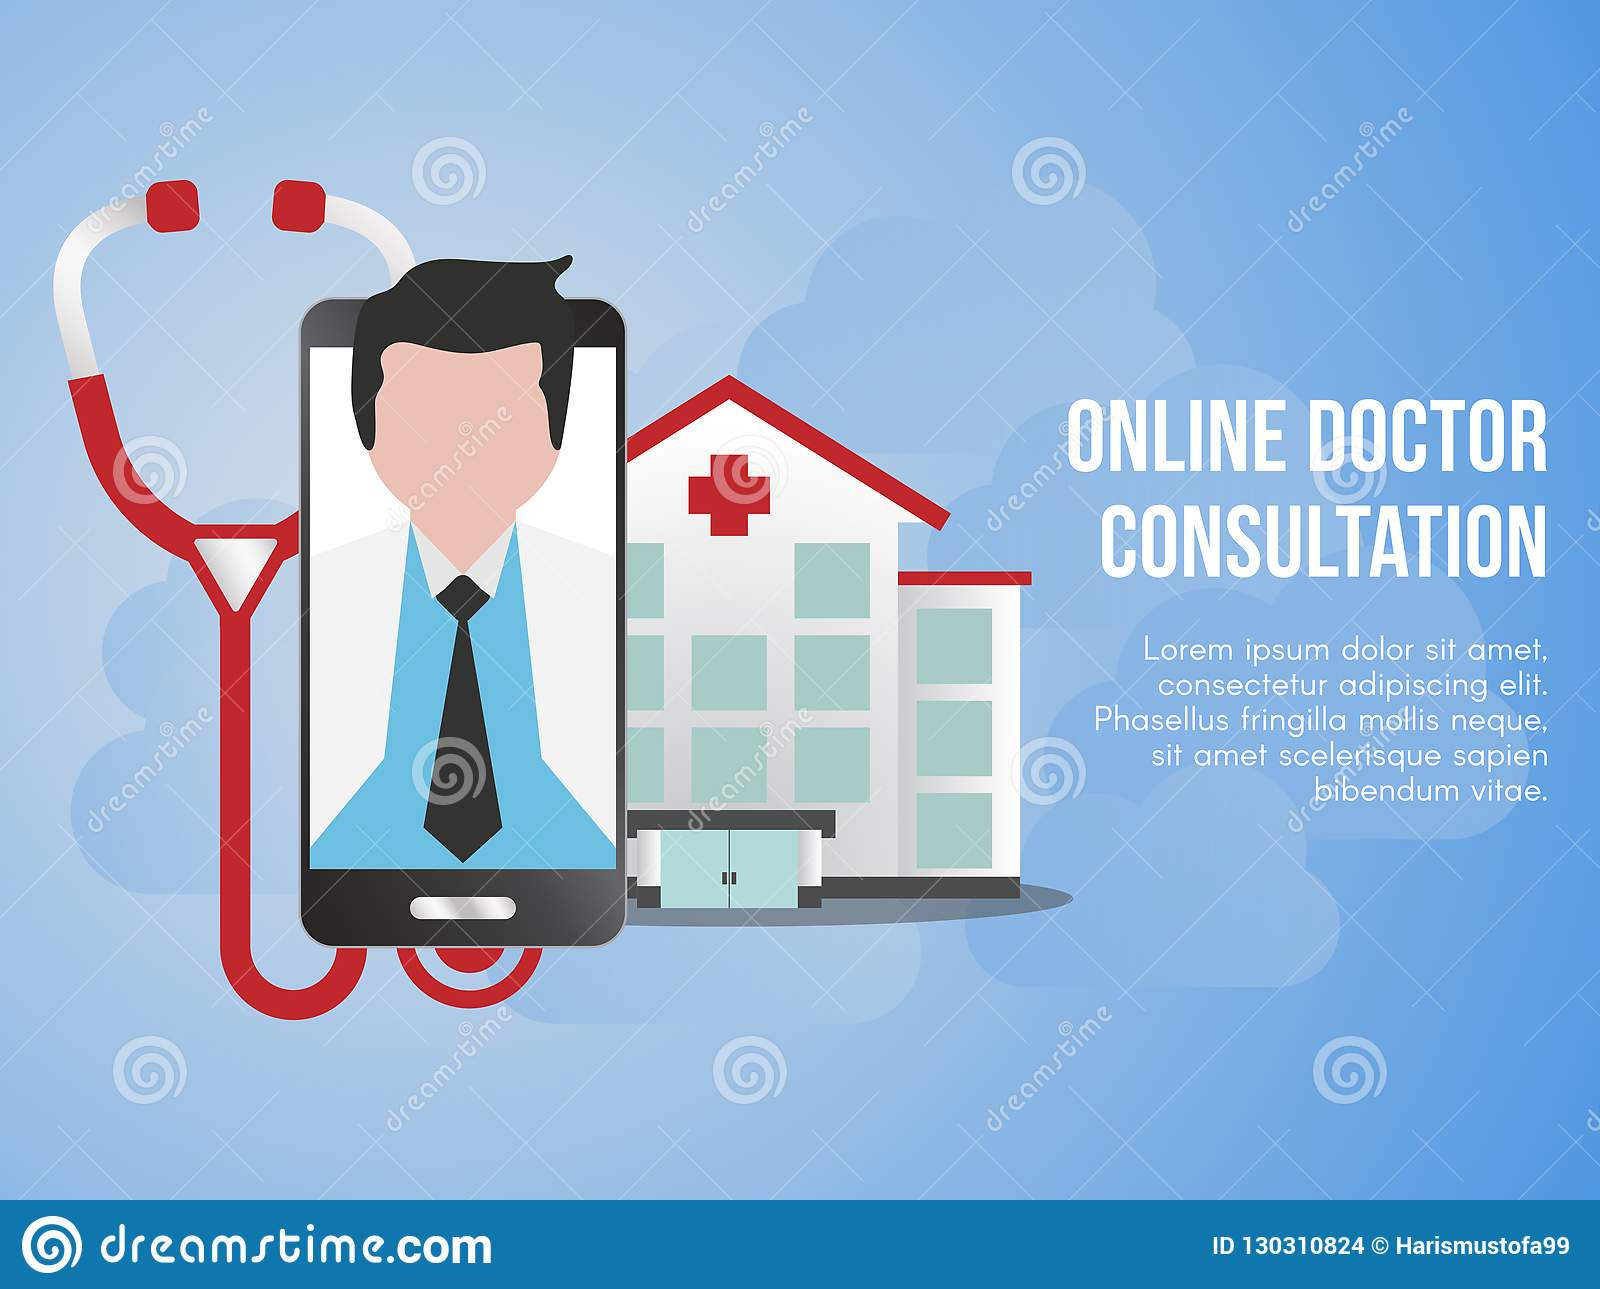 Doctor Consultation Banners Bundle Banners